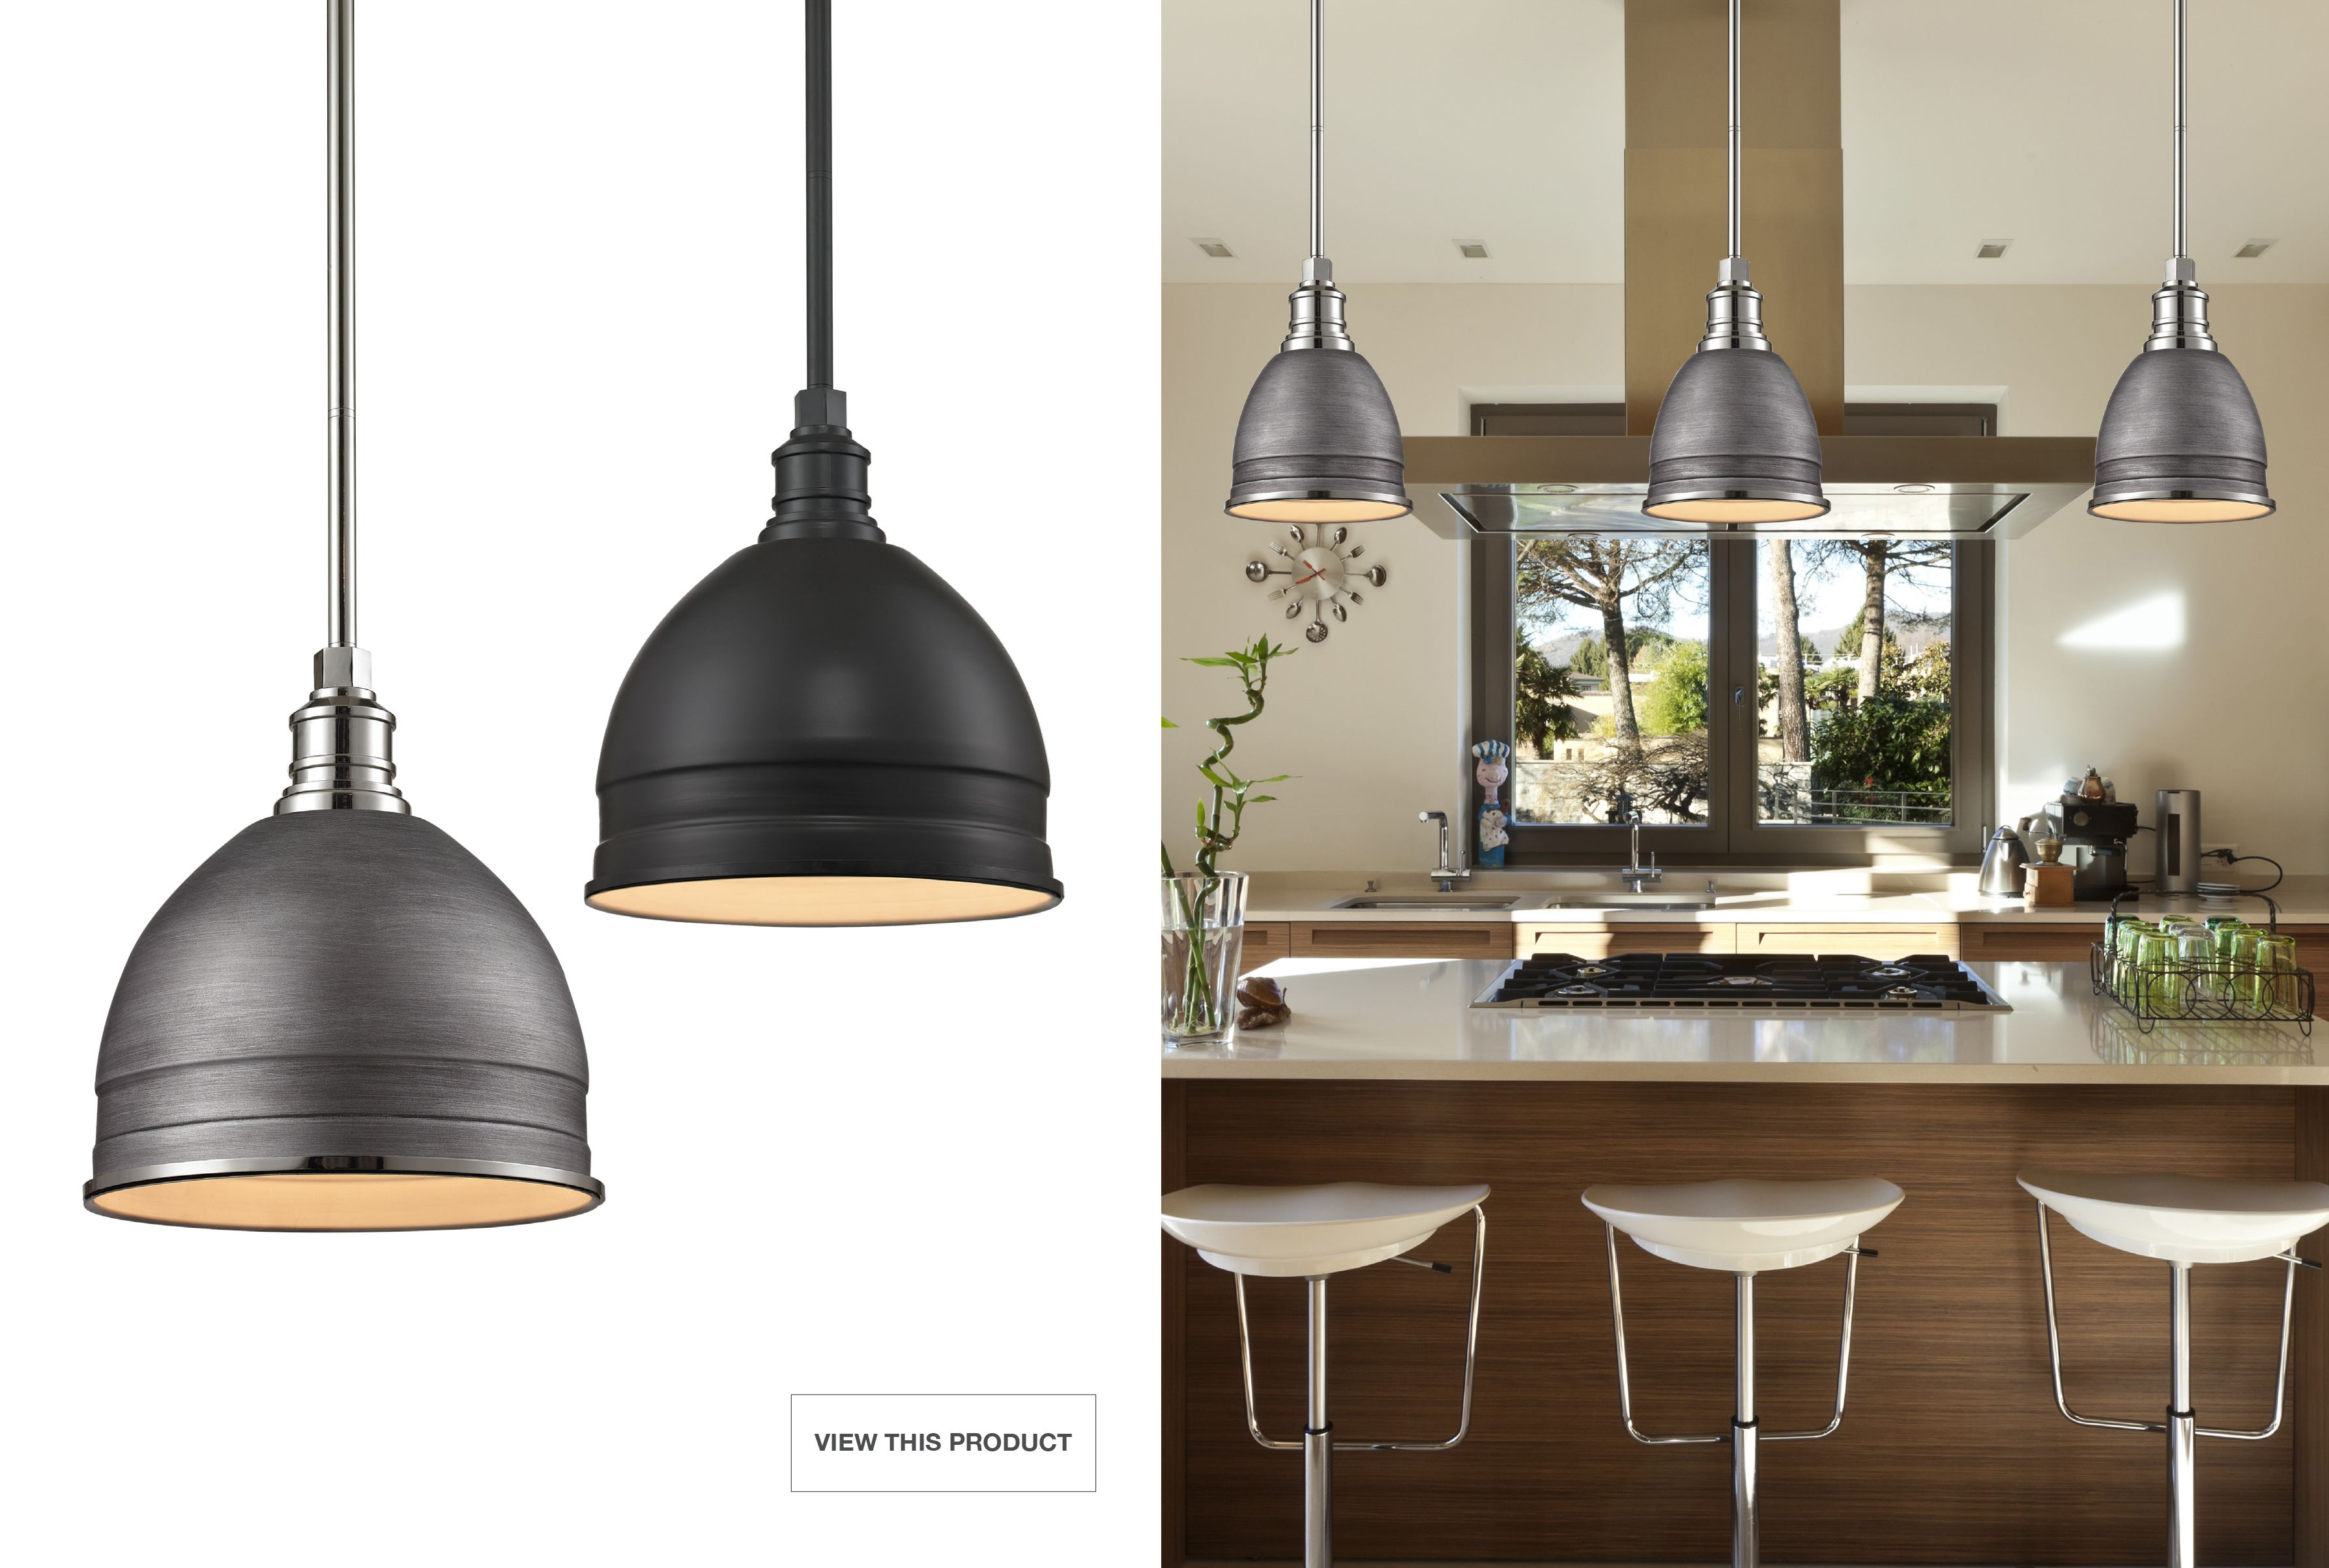 Carolton pendants by elk beautiful finishes and details that bring lighting luxury interior lights design ideas elk lighting intended for dimensions 2100 x 2100 artistic lighting farmhouse pendant are you redesigning you aloadofball Image collections